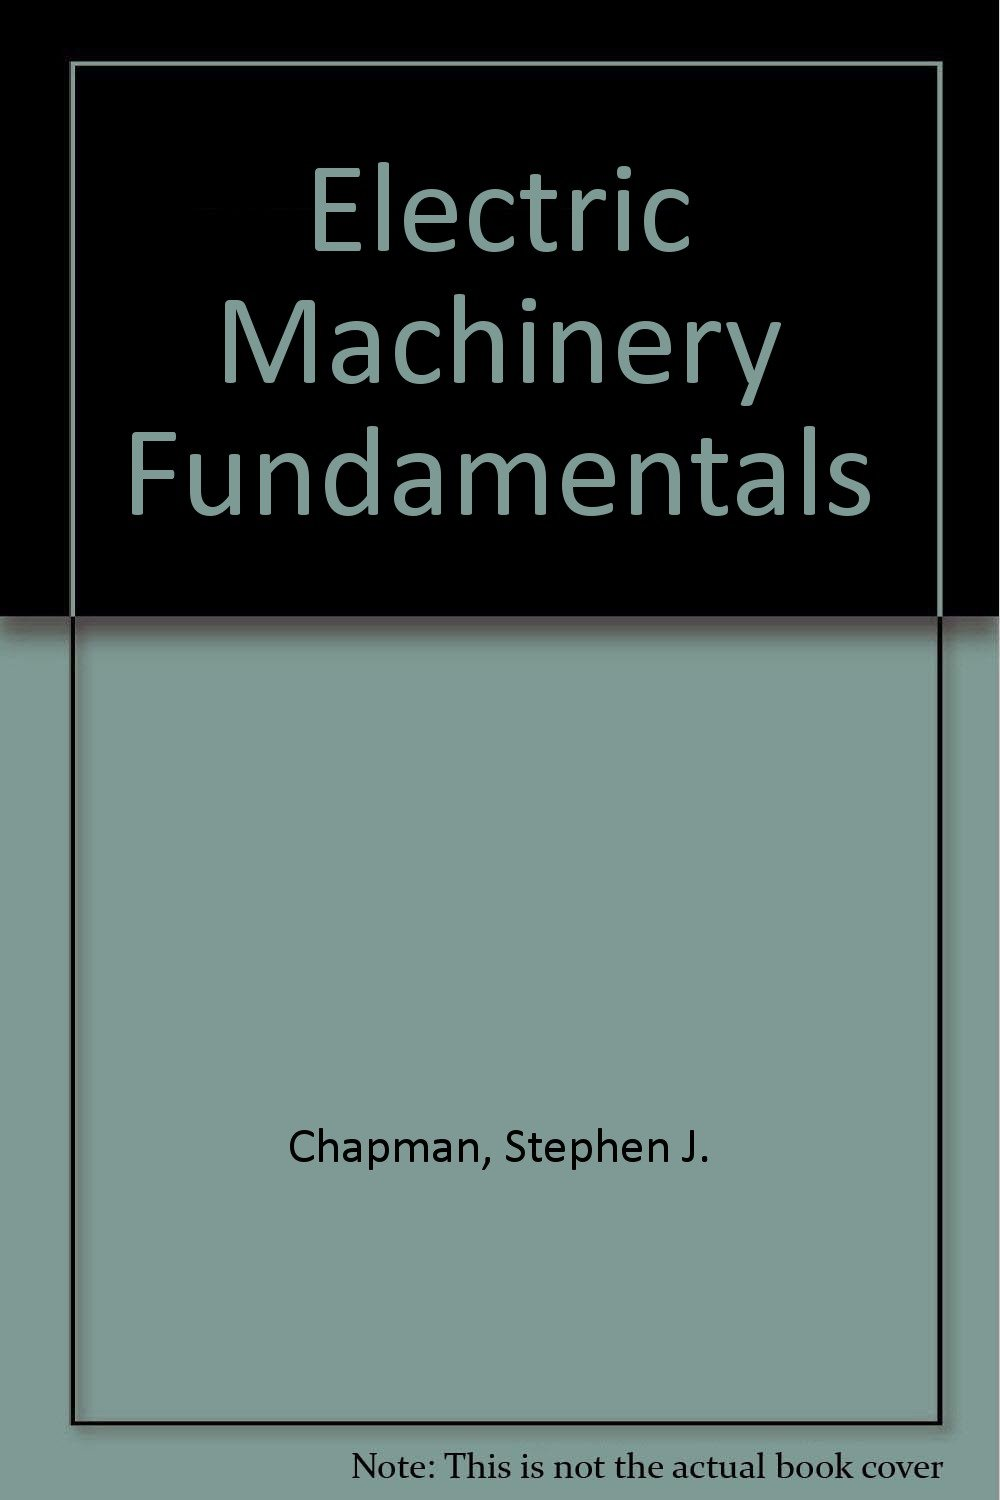 Amazon.in: Buy Electric Machinery Fundamentals Book Online at Low ...